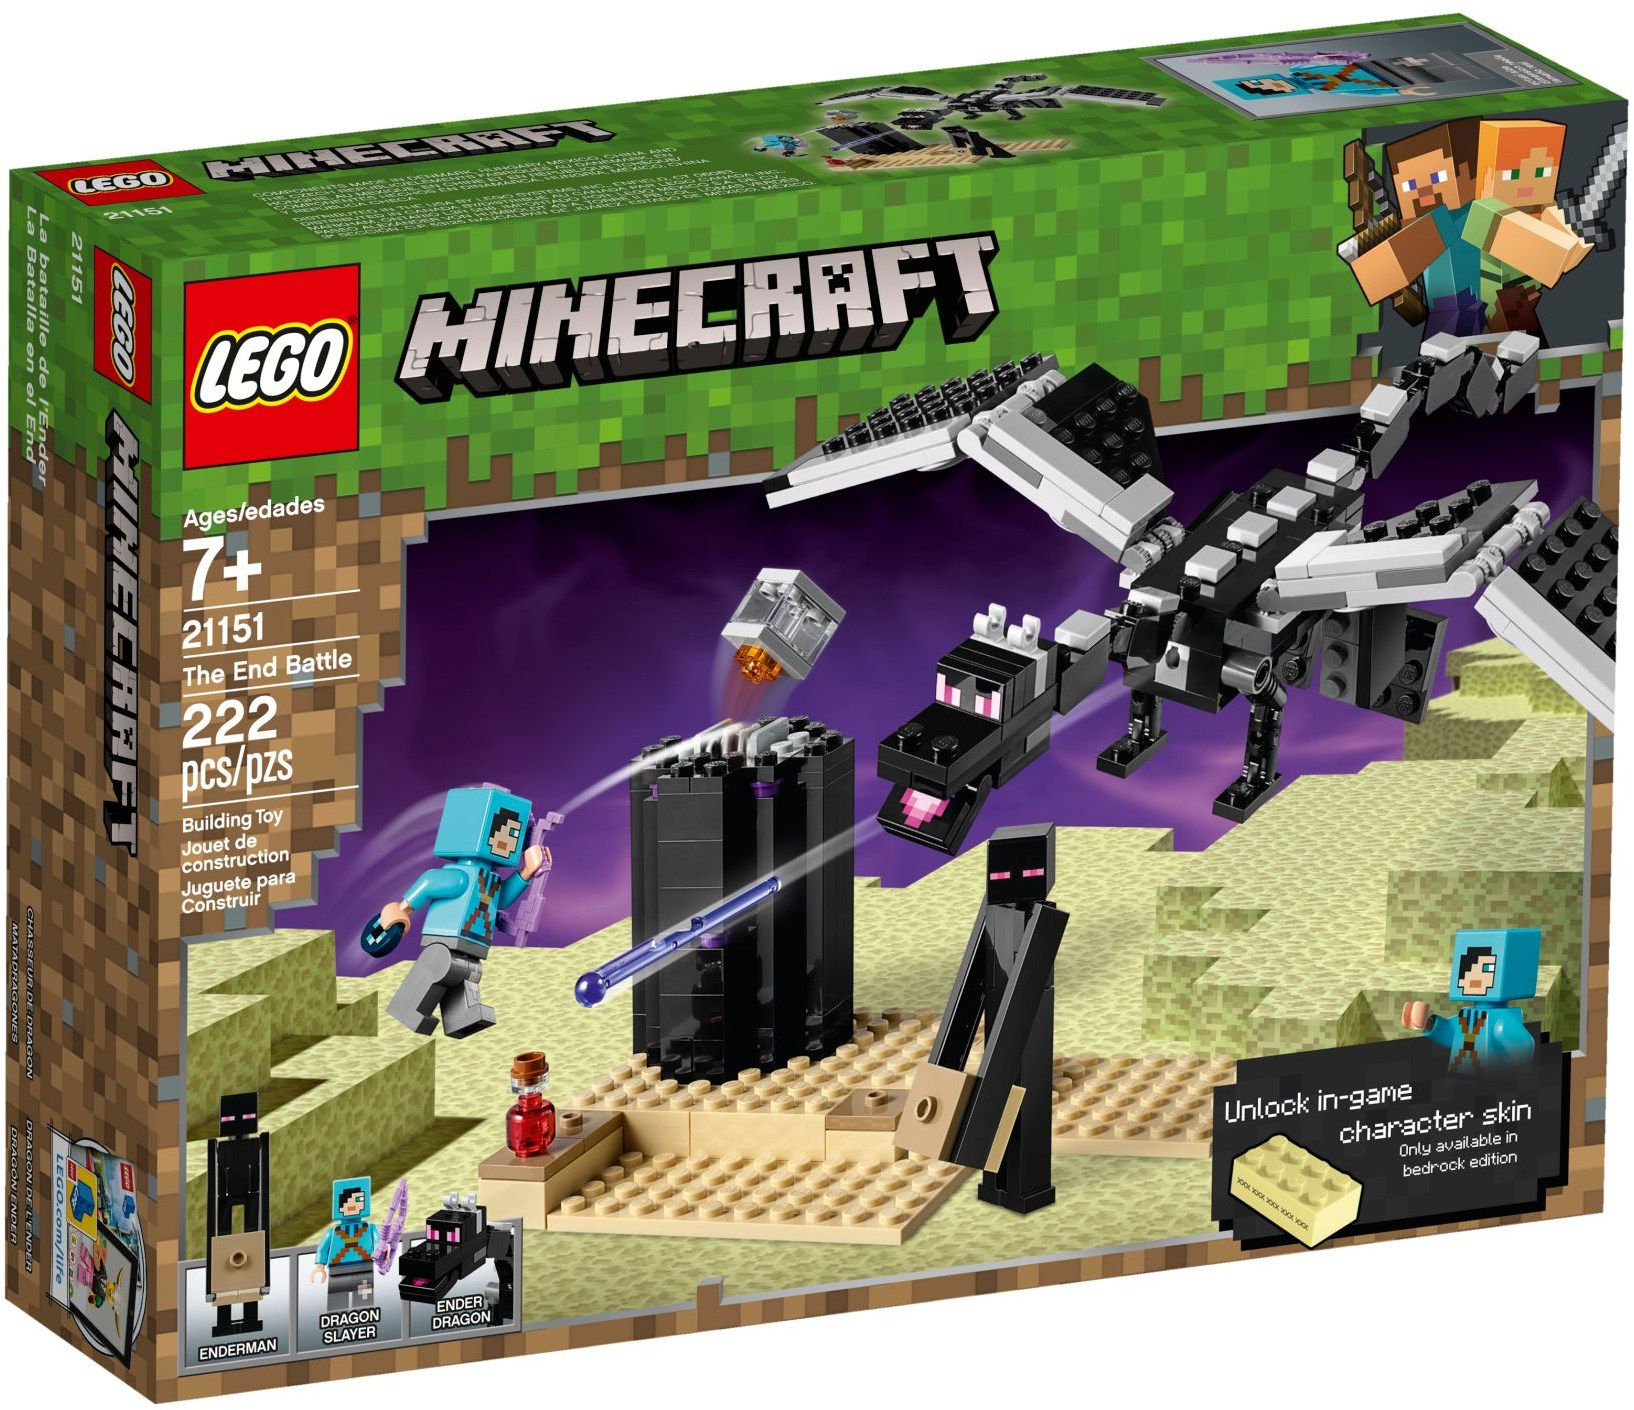 LEGO MINECRAFT ENDERMAN MINIFIGURE FROM SET 21117 The Ender Dragon